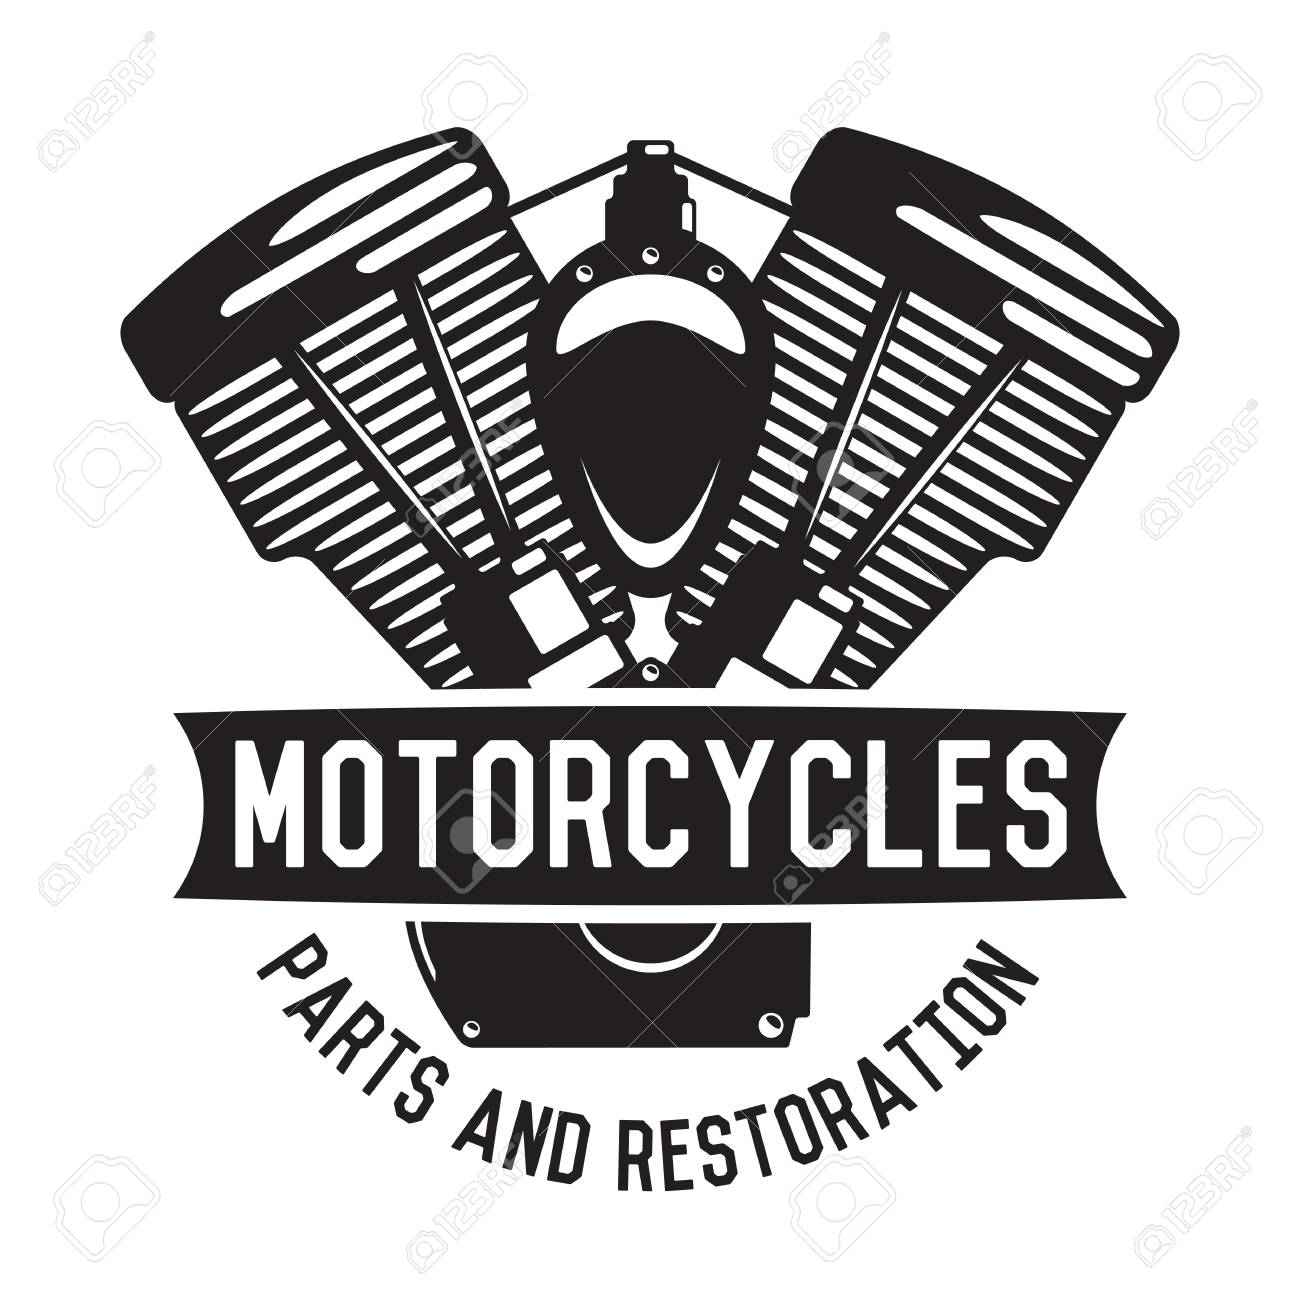 Motorcycle Emblem In Monochrome Silhouette Style Logo With Motor